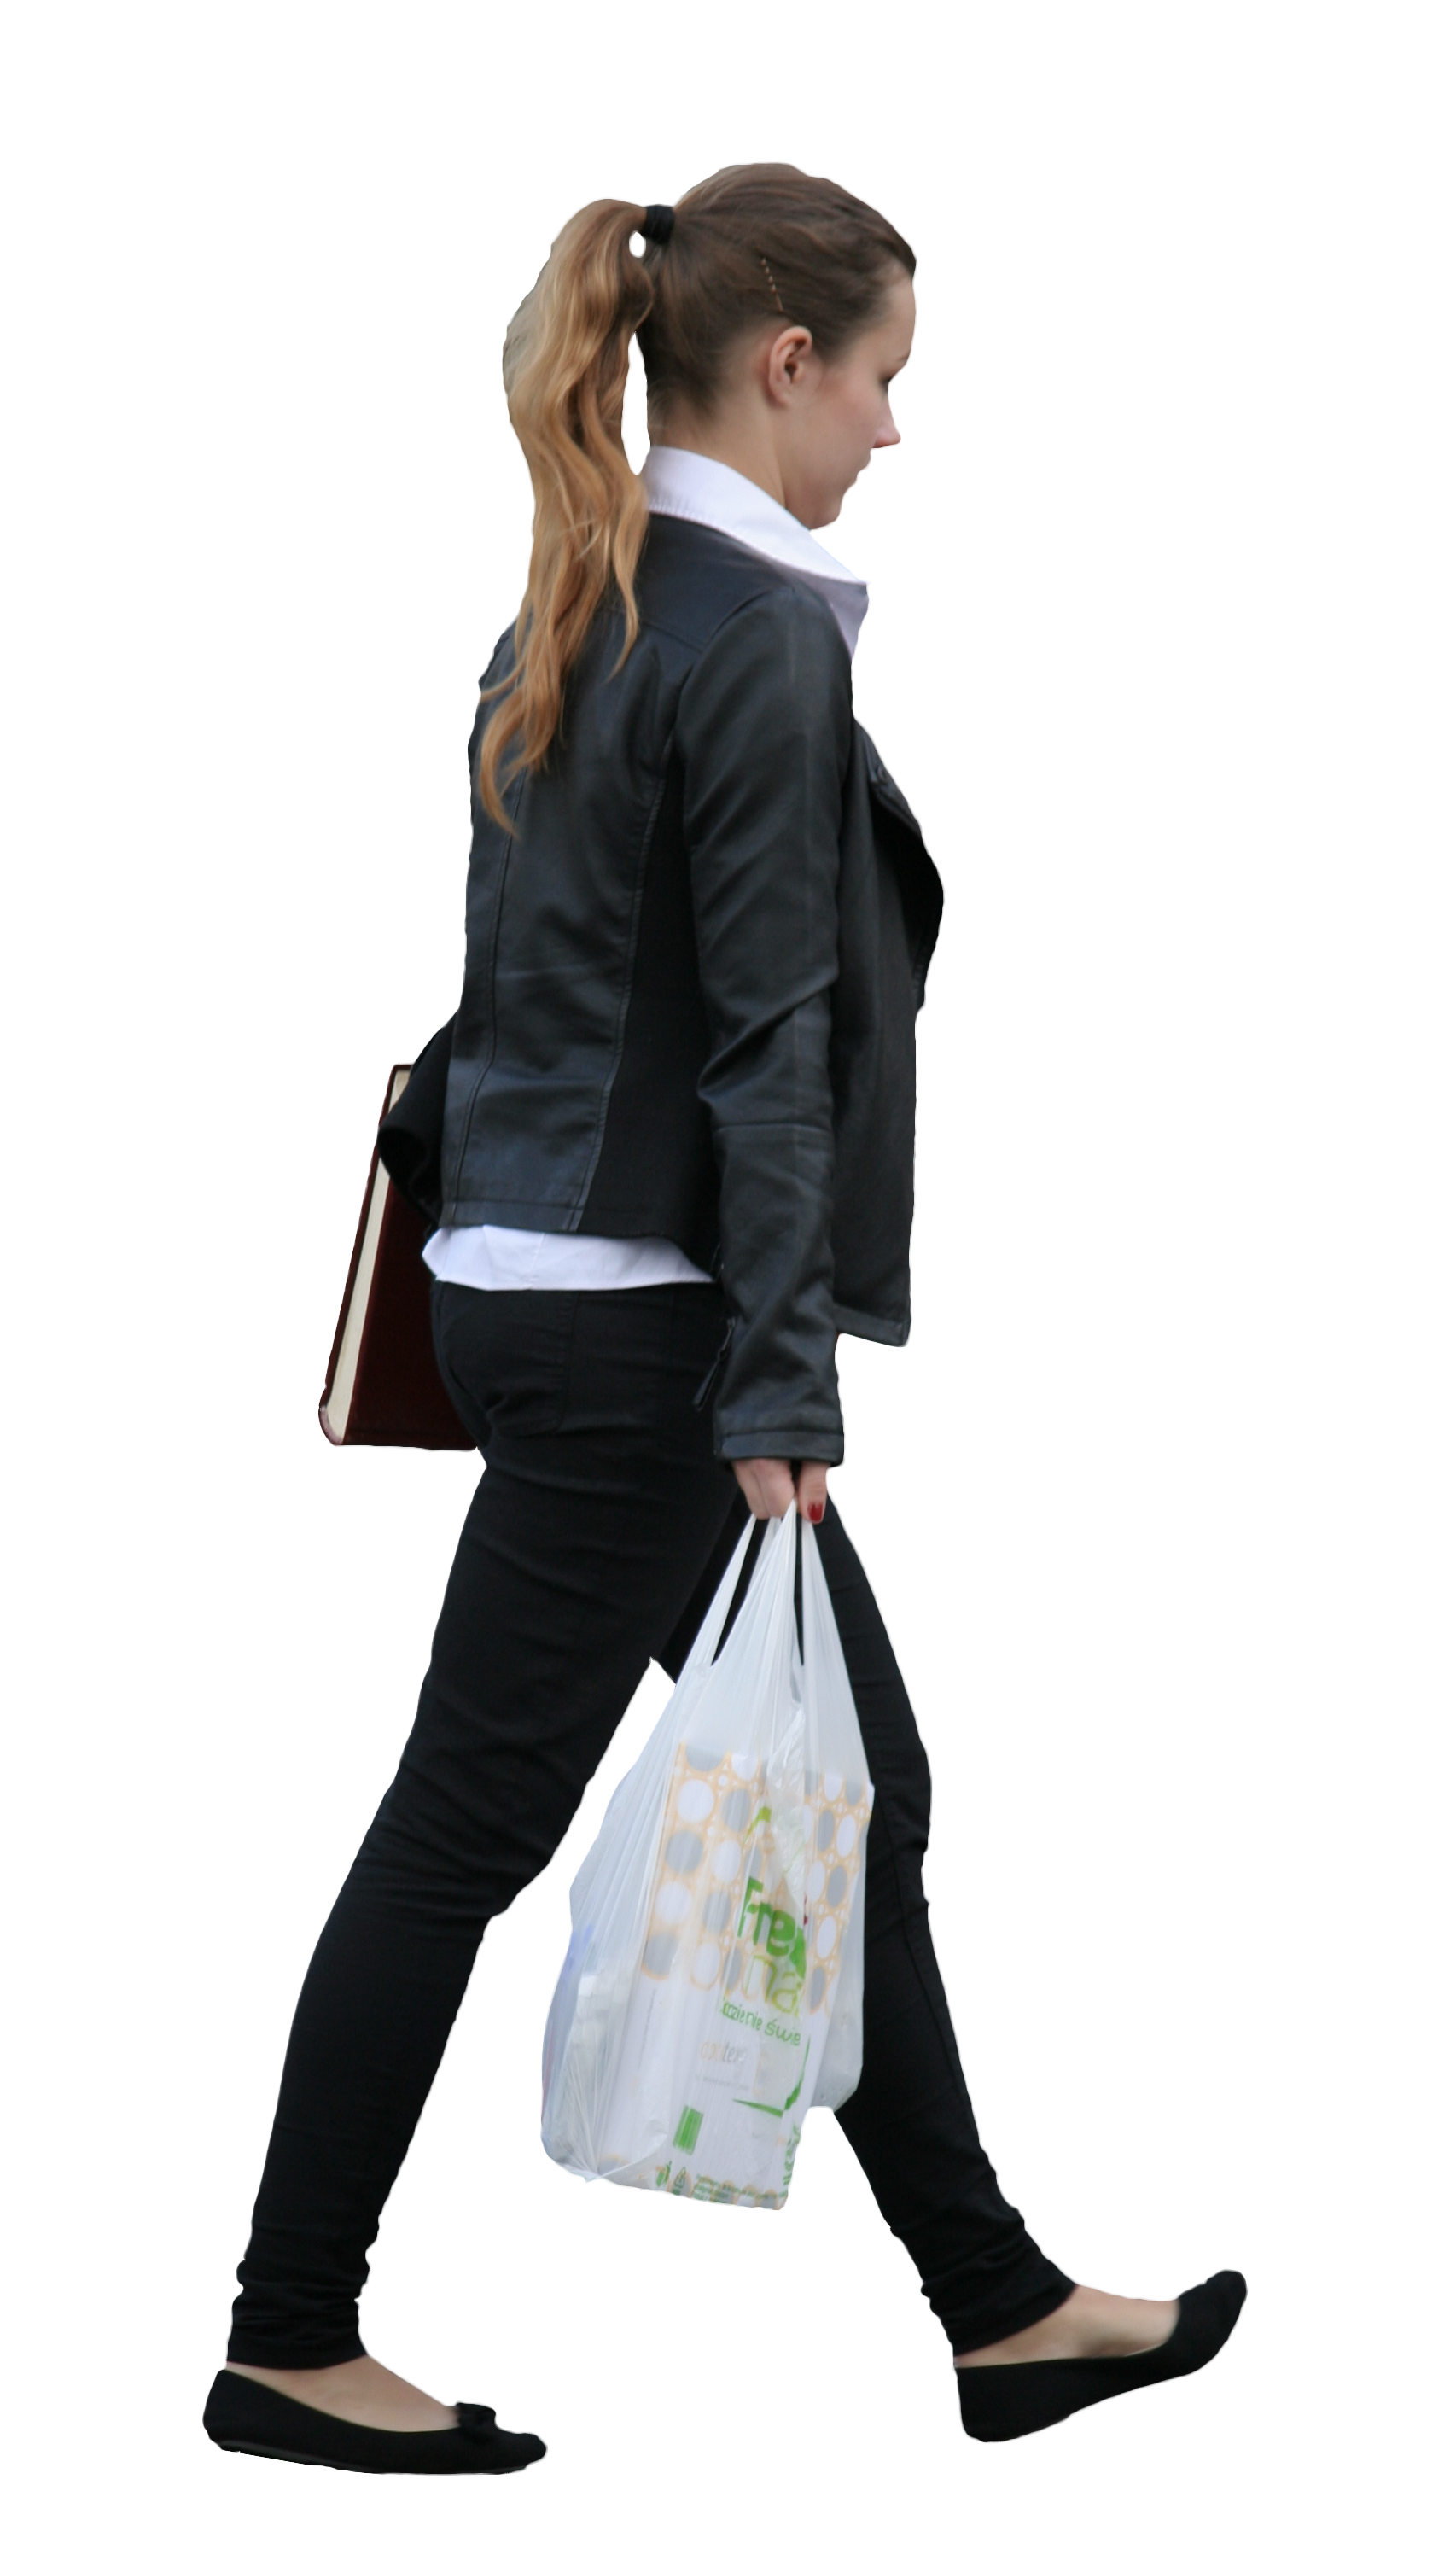 Free png people. Girl with shopping bag